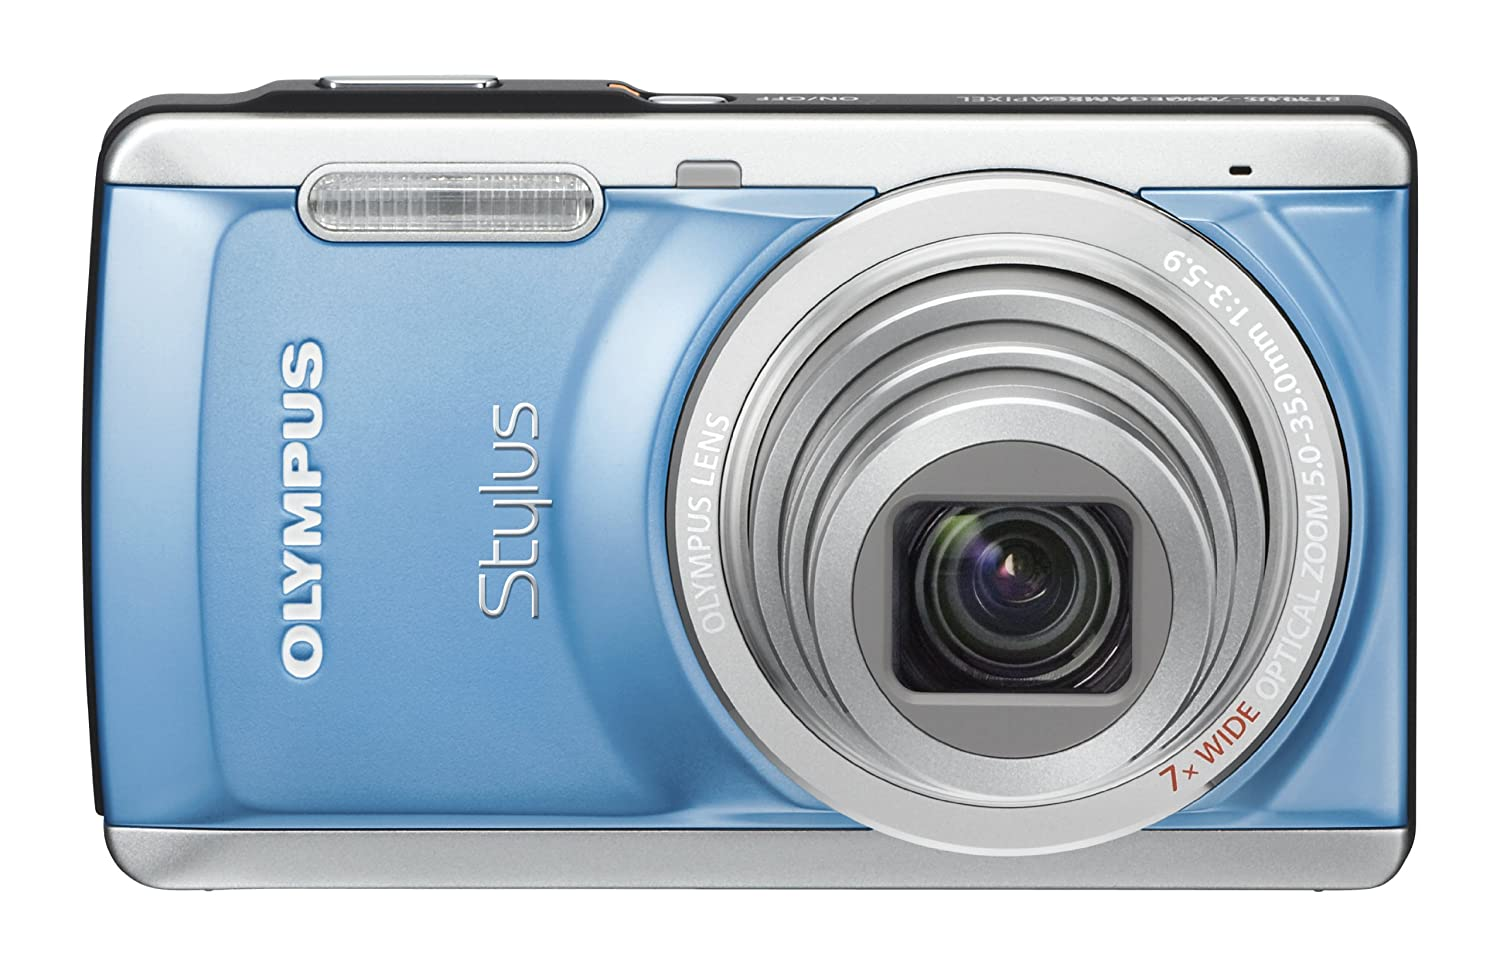 Amazon.com : Olympus Stylus 7040 14 MP Digital Camera with 7x Wide Angle  Dual Image Stabilized Zoom and 3.0 inch LCD (Pink) (Old Model) : Point And  Shoot ...